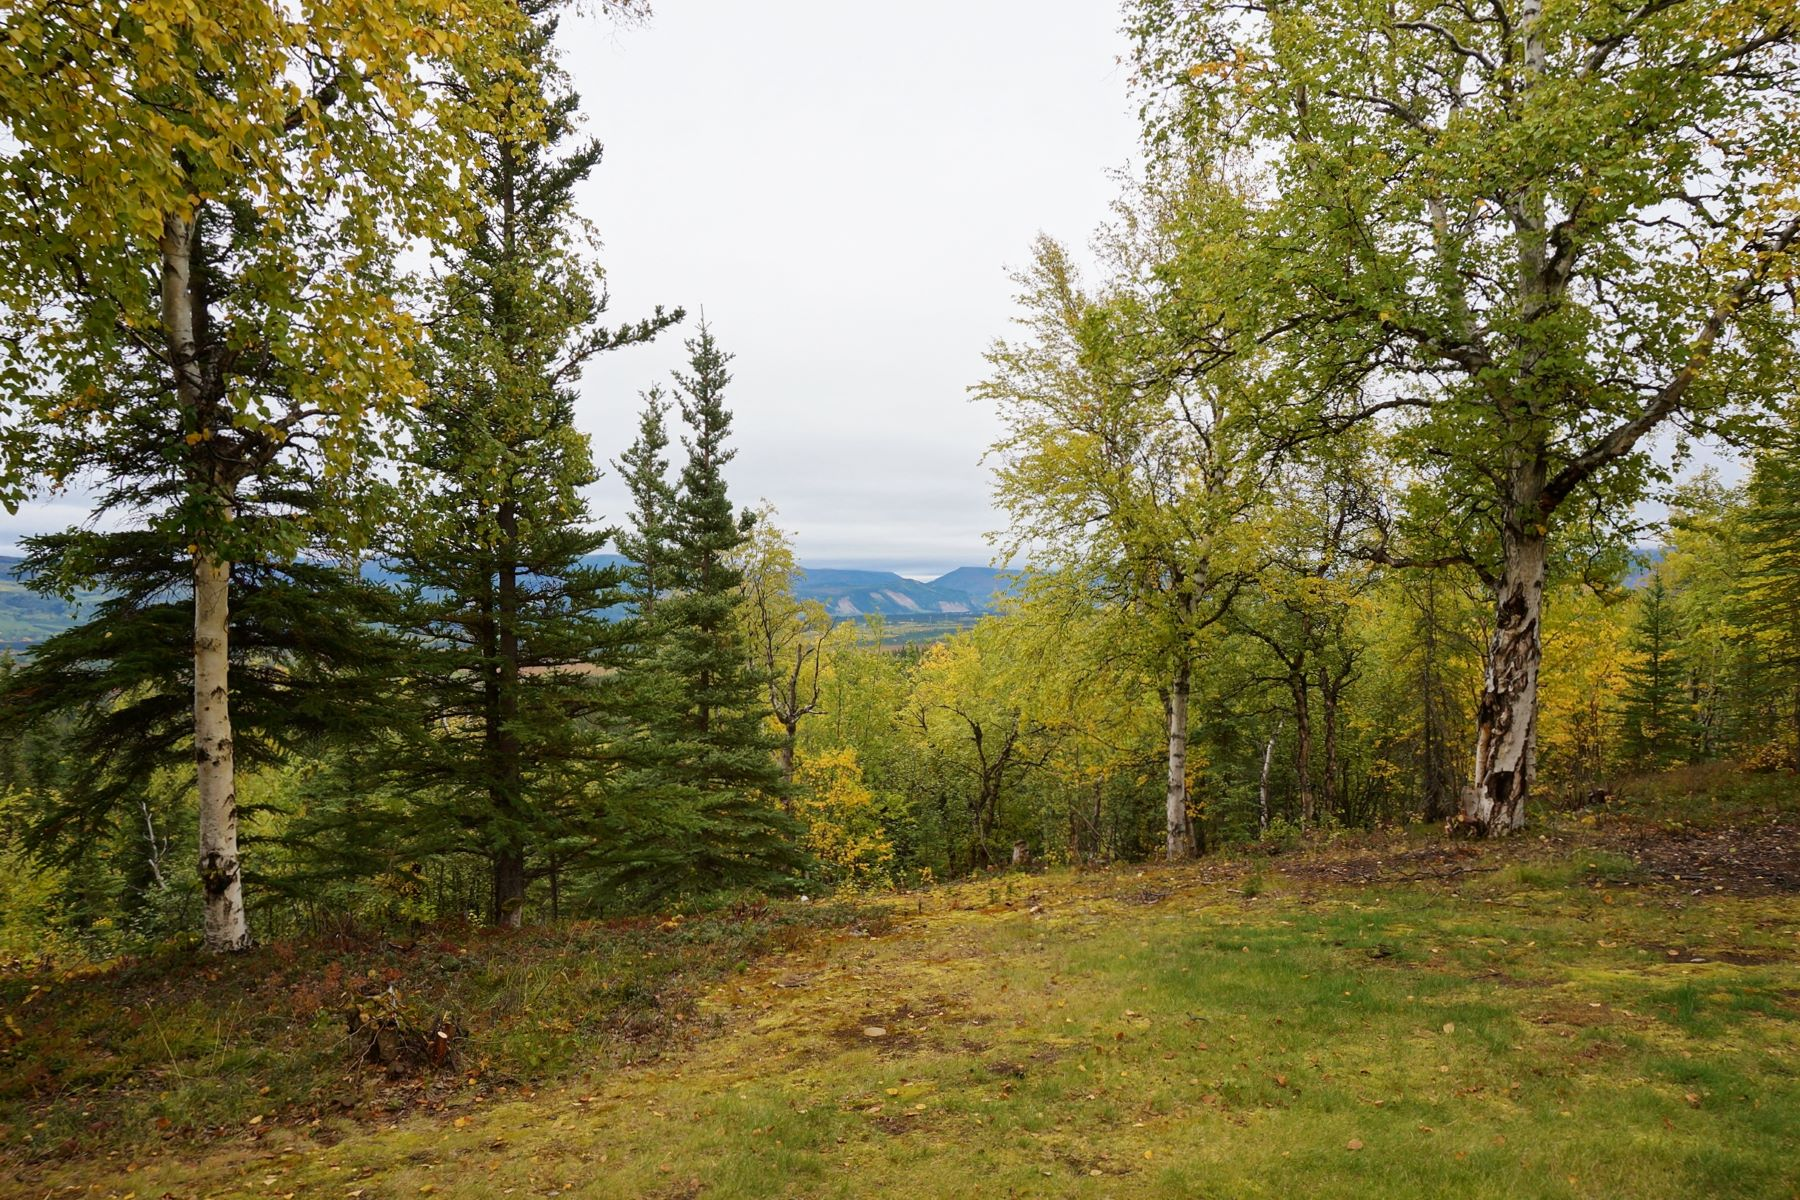 Land for Sale at Lot 4 Ridgetop Cabins Road, Ridgetop Subdivision, Healy, Alaska 99743 United States